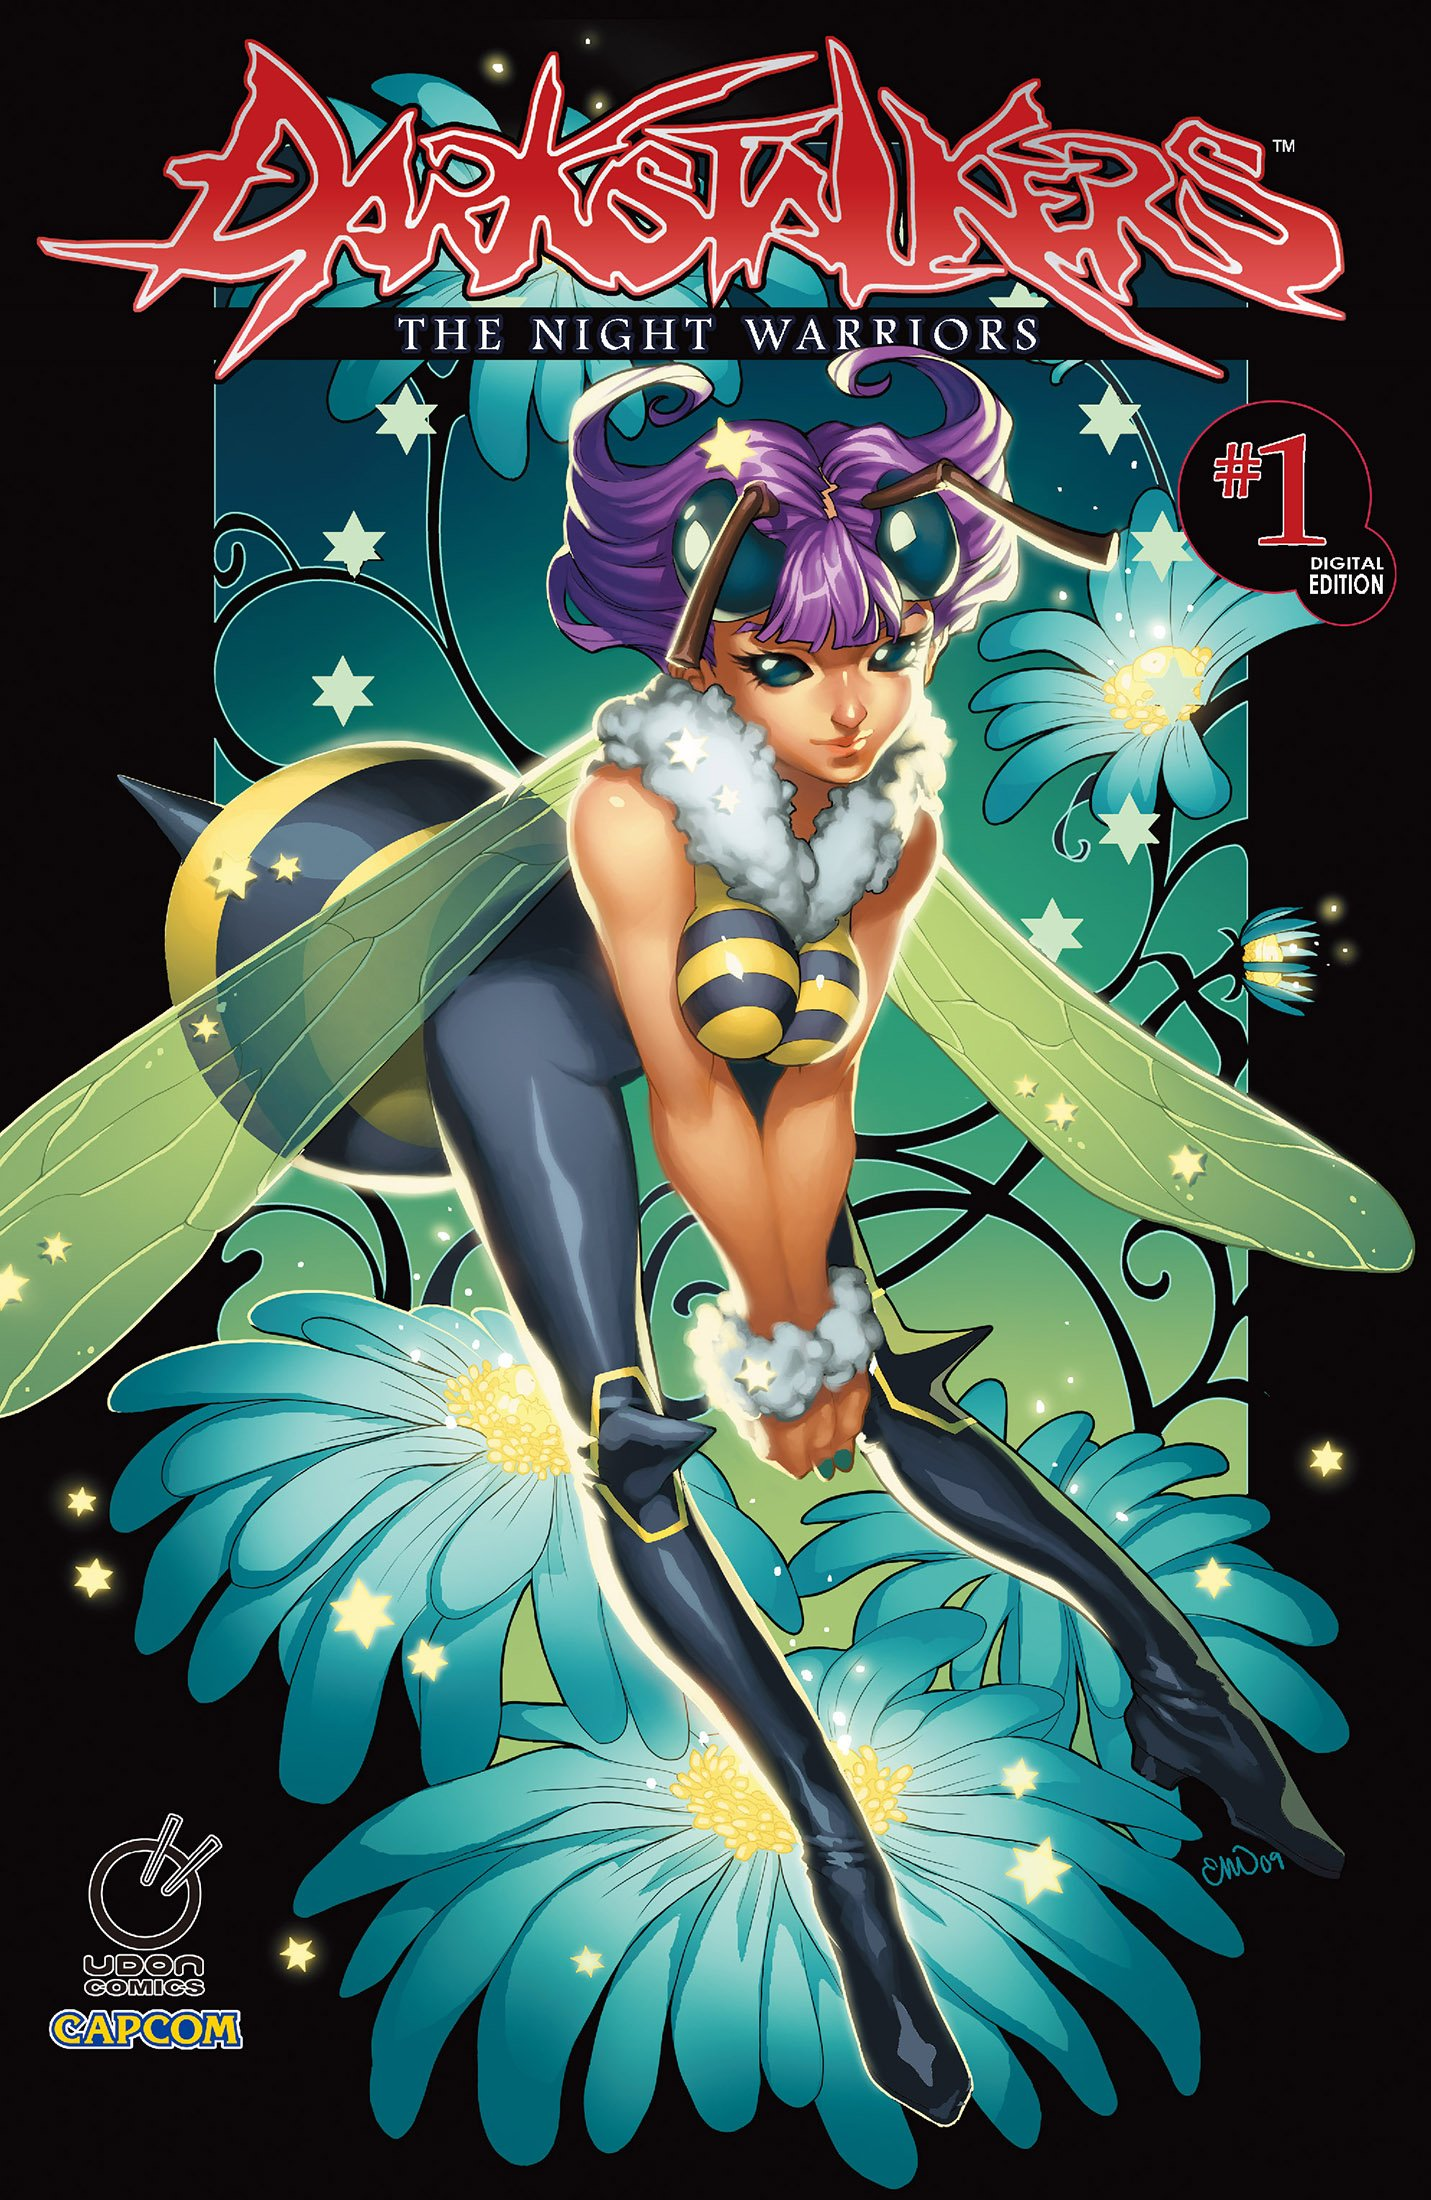 Darkstalkers: The Night Warriors 001 (February 2010) (Cover B)